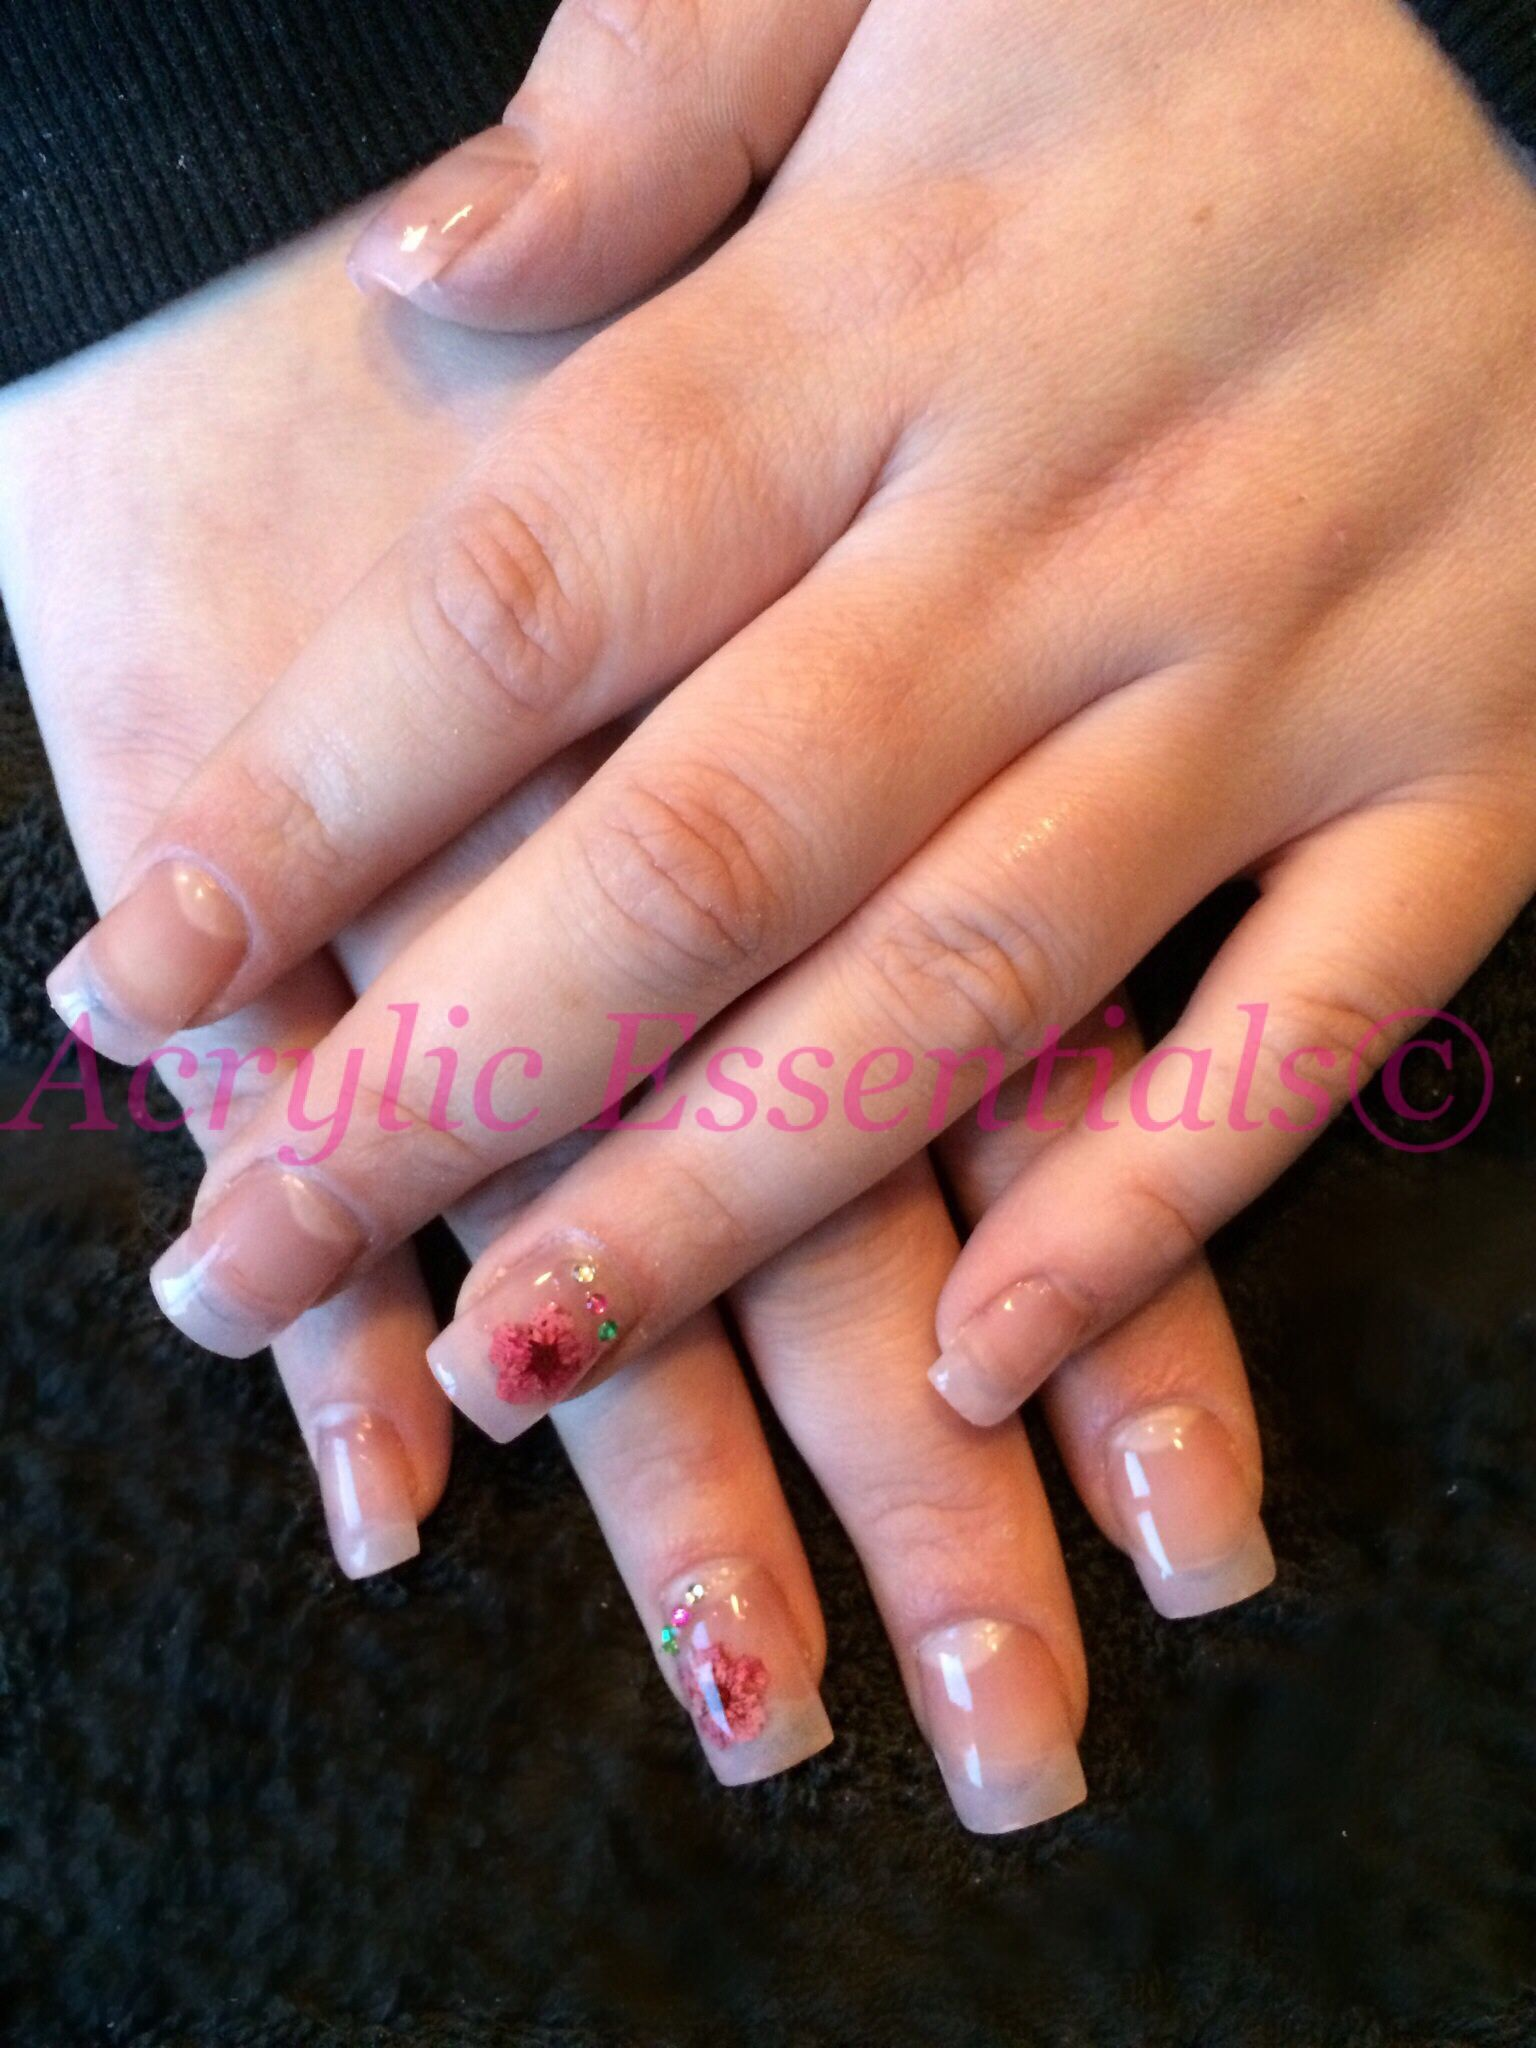 MOBILE NAILS******** Acrylic nails ! Full set from £20, Choose from ...